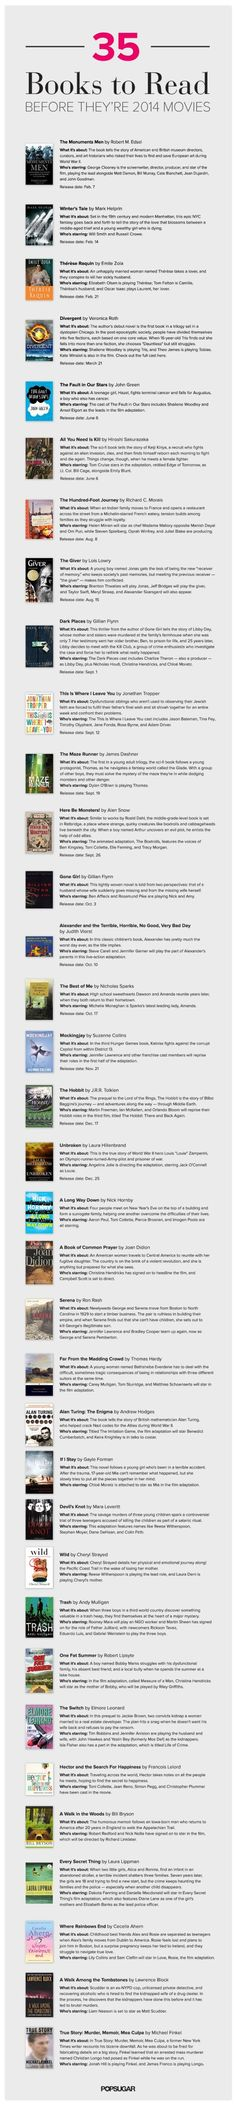 35 #books to read before they are 2014 movies #infographic